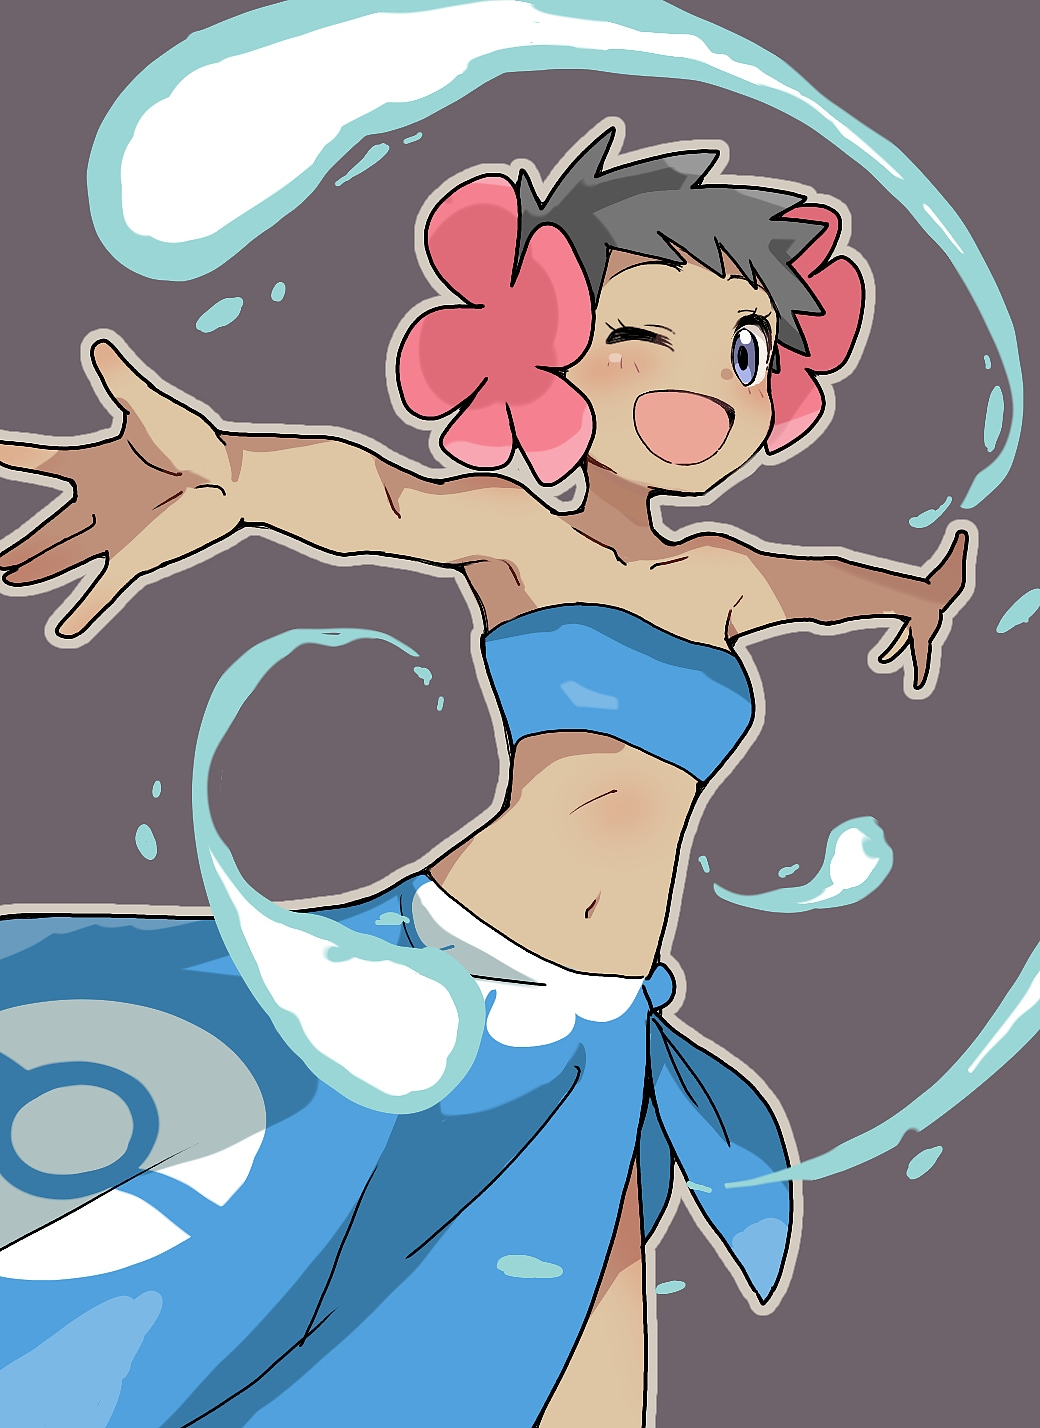 1girl arms_up bangs bare_shoulders black_hair blue_hair blue_sarong blush breasts brown_outline collarbone dark_skin ddak5843 flower fuyou_(pokemon) grey_background gym_leader hair_flower hair_ornament happy highres looking_at_viewer midriff navel one_eye_closed open_mouth outline outstretched_arms pink_flower poke_ball_symbol poke_ball_theme pokemon pokemon_(game) pokemon_rse sarong short_hair simple_background small_breasts smile solo spread_arms standing strapless tubetop